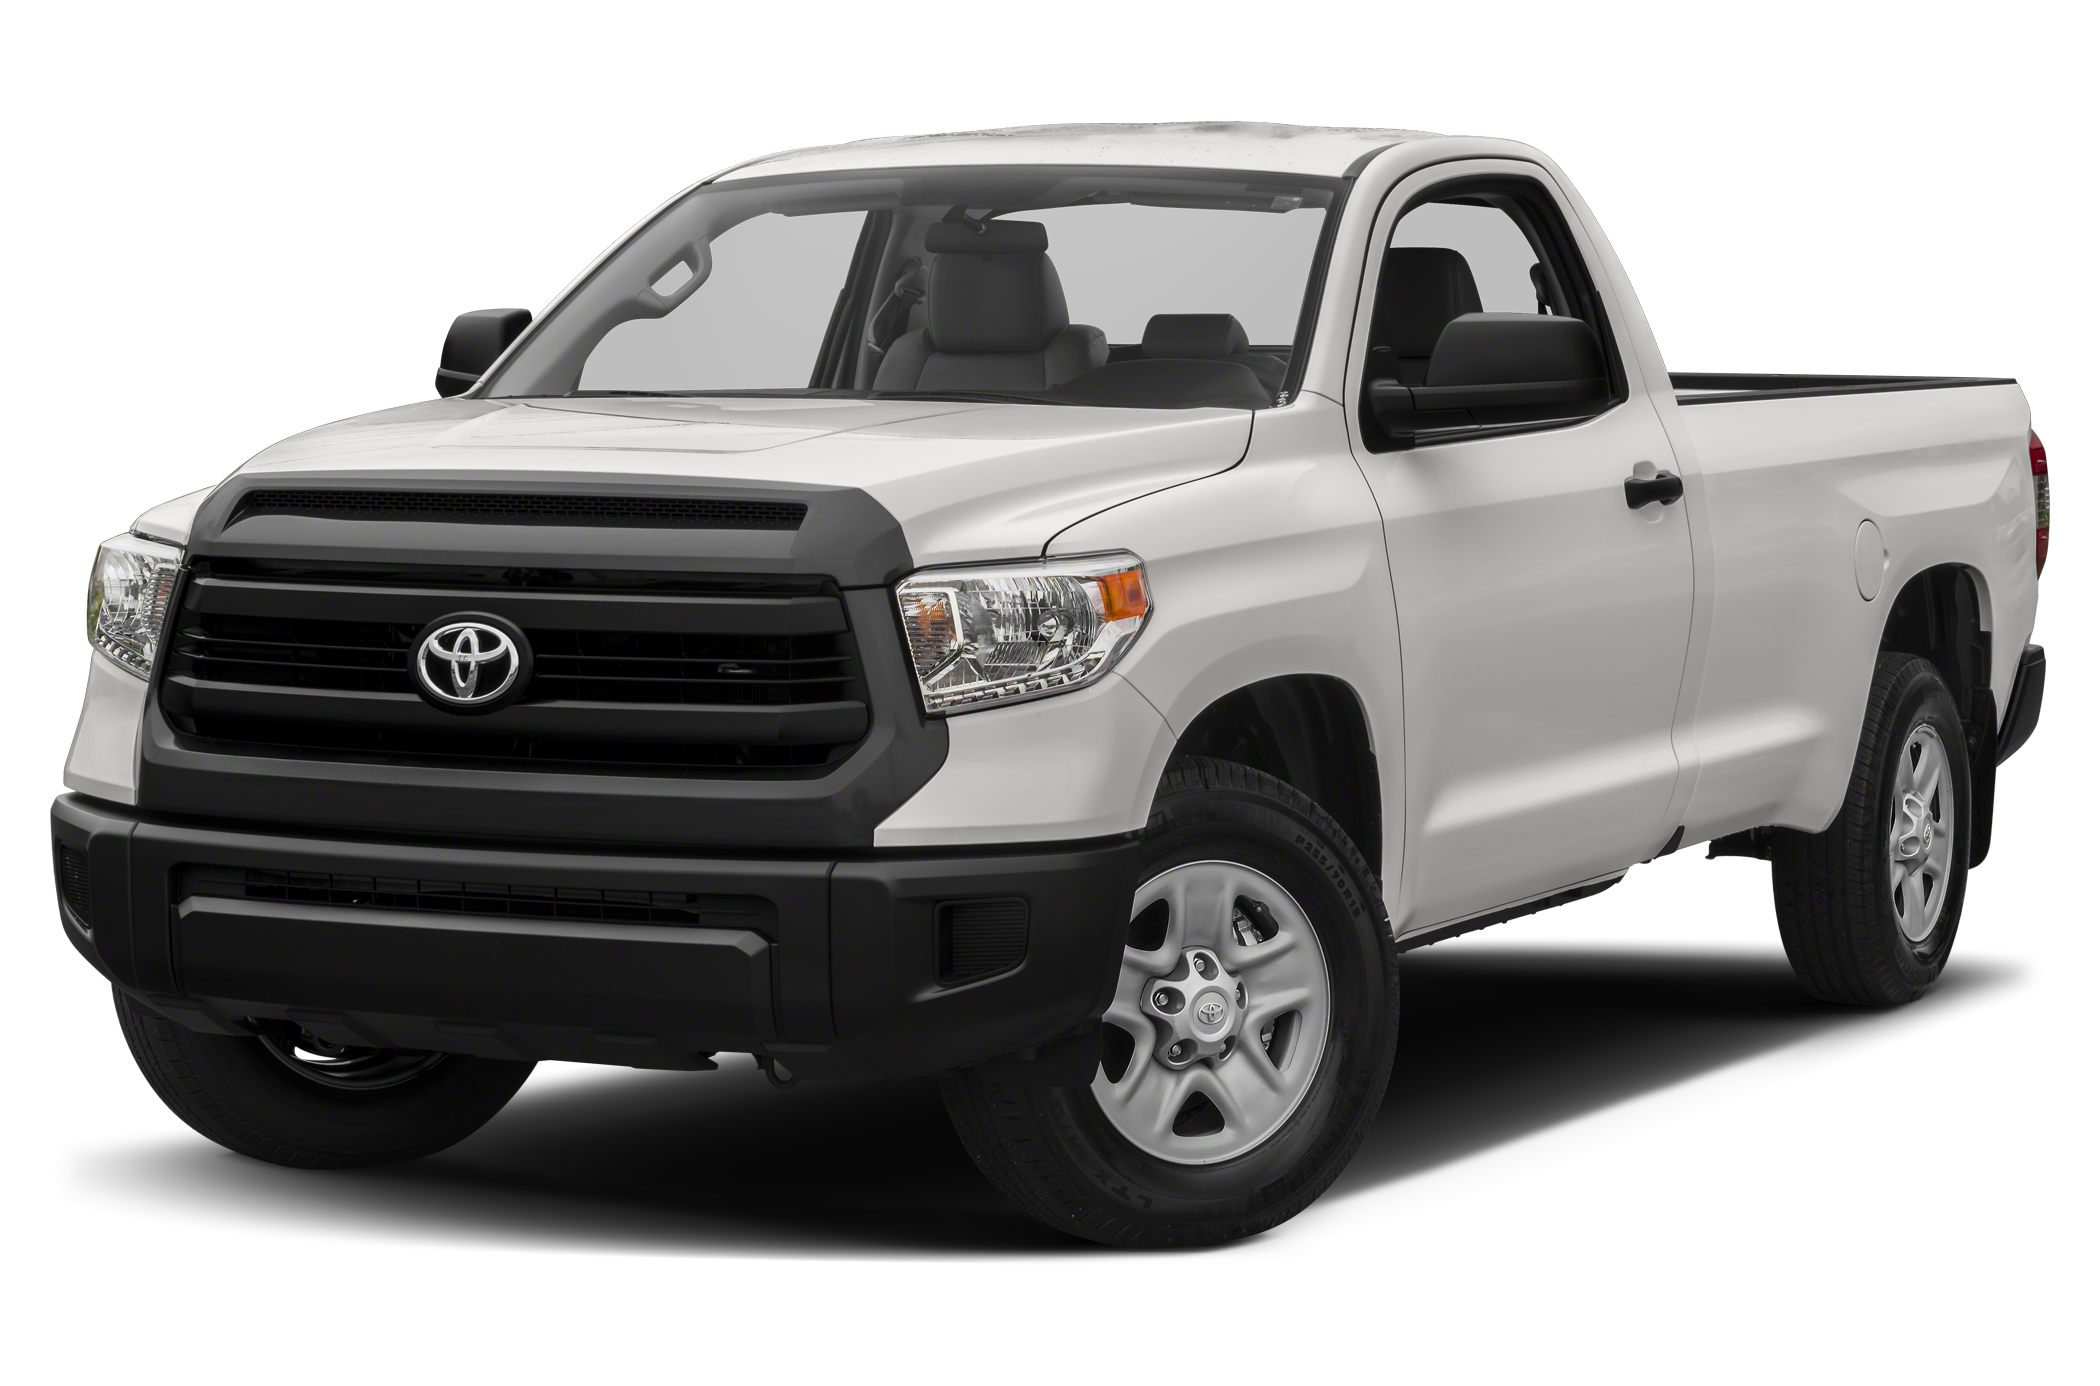 2016 Toyota Tundra Pricing And Specs